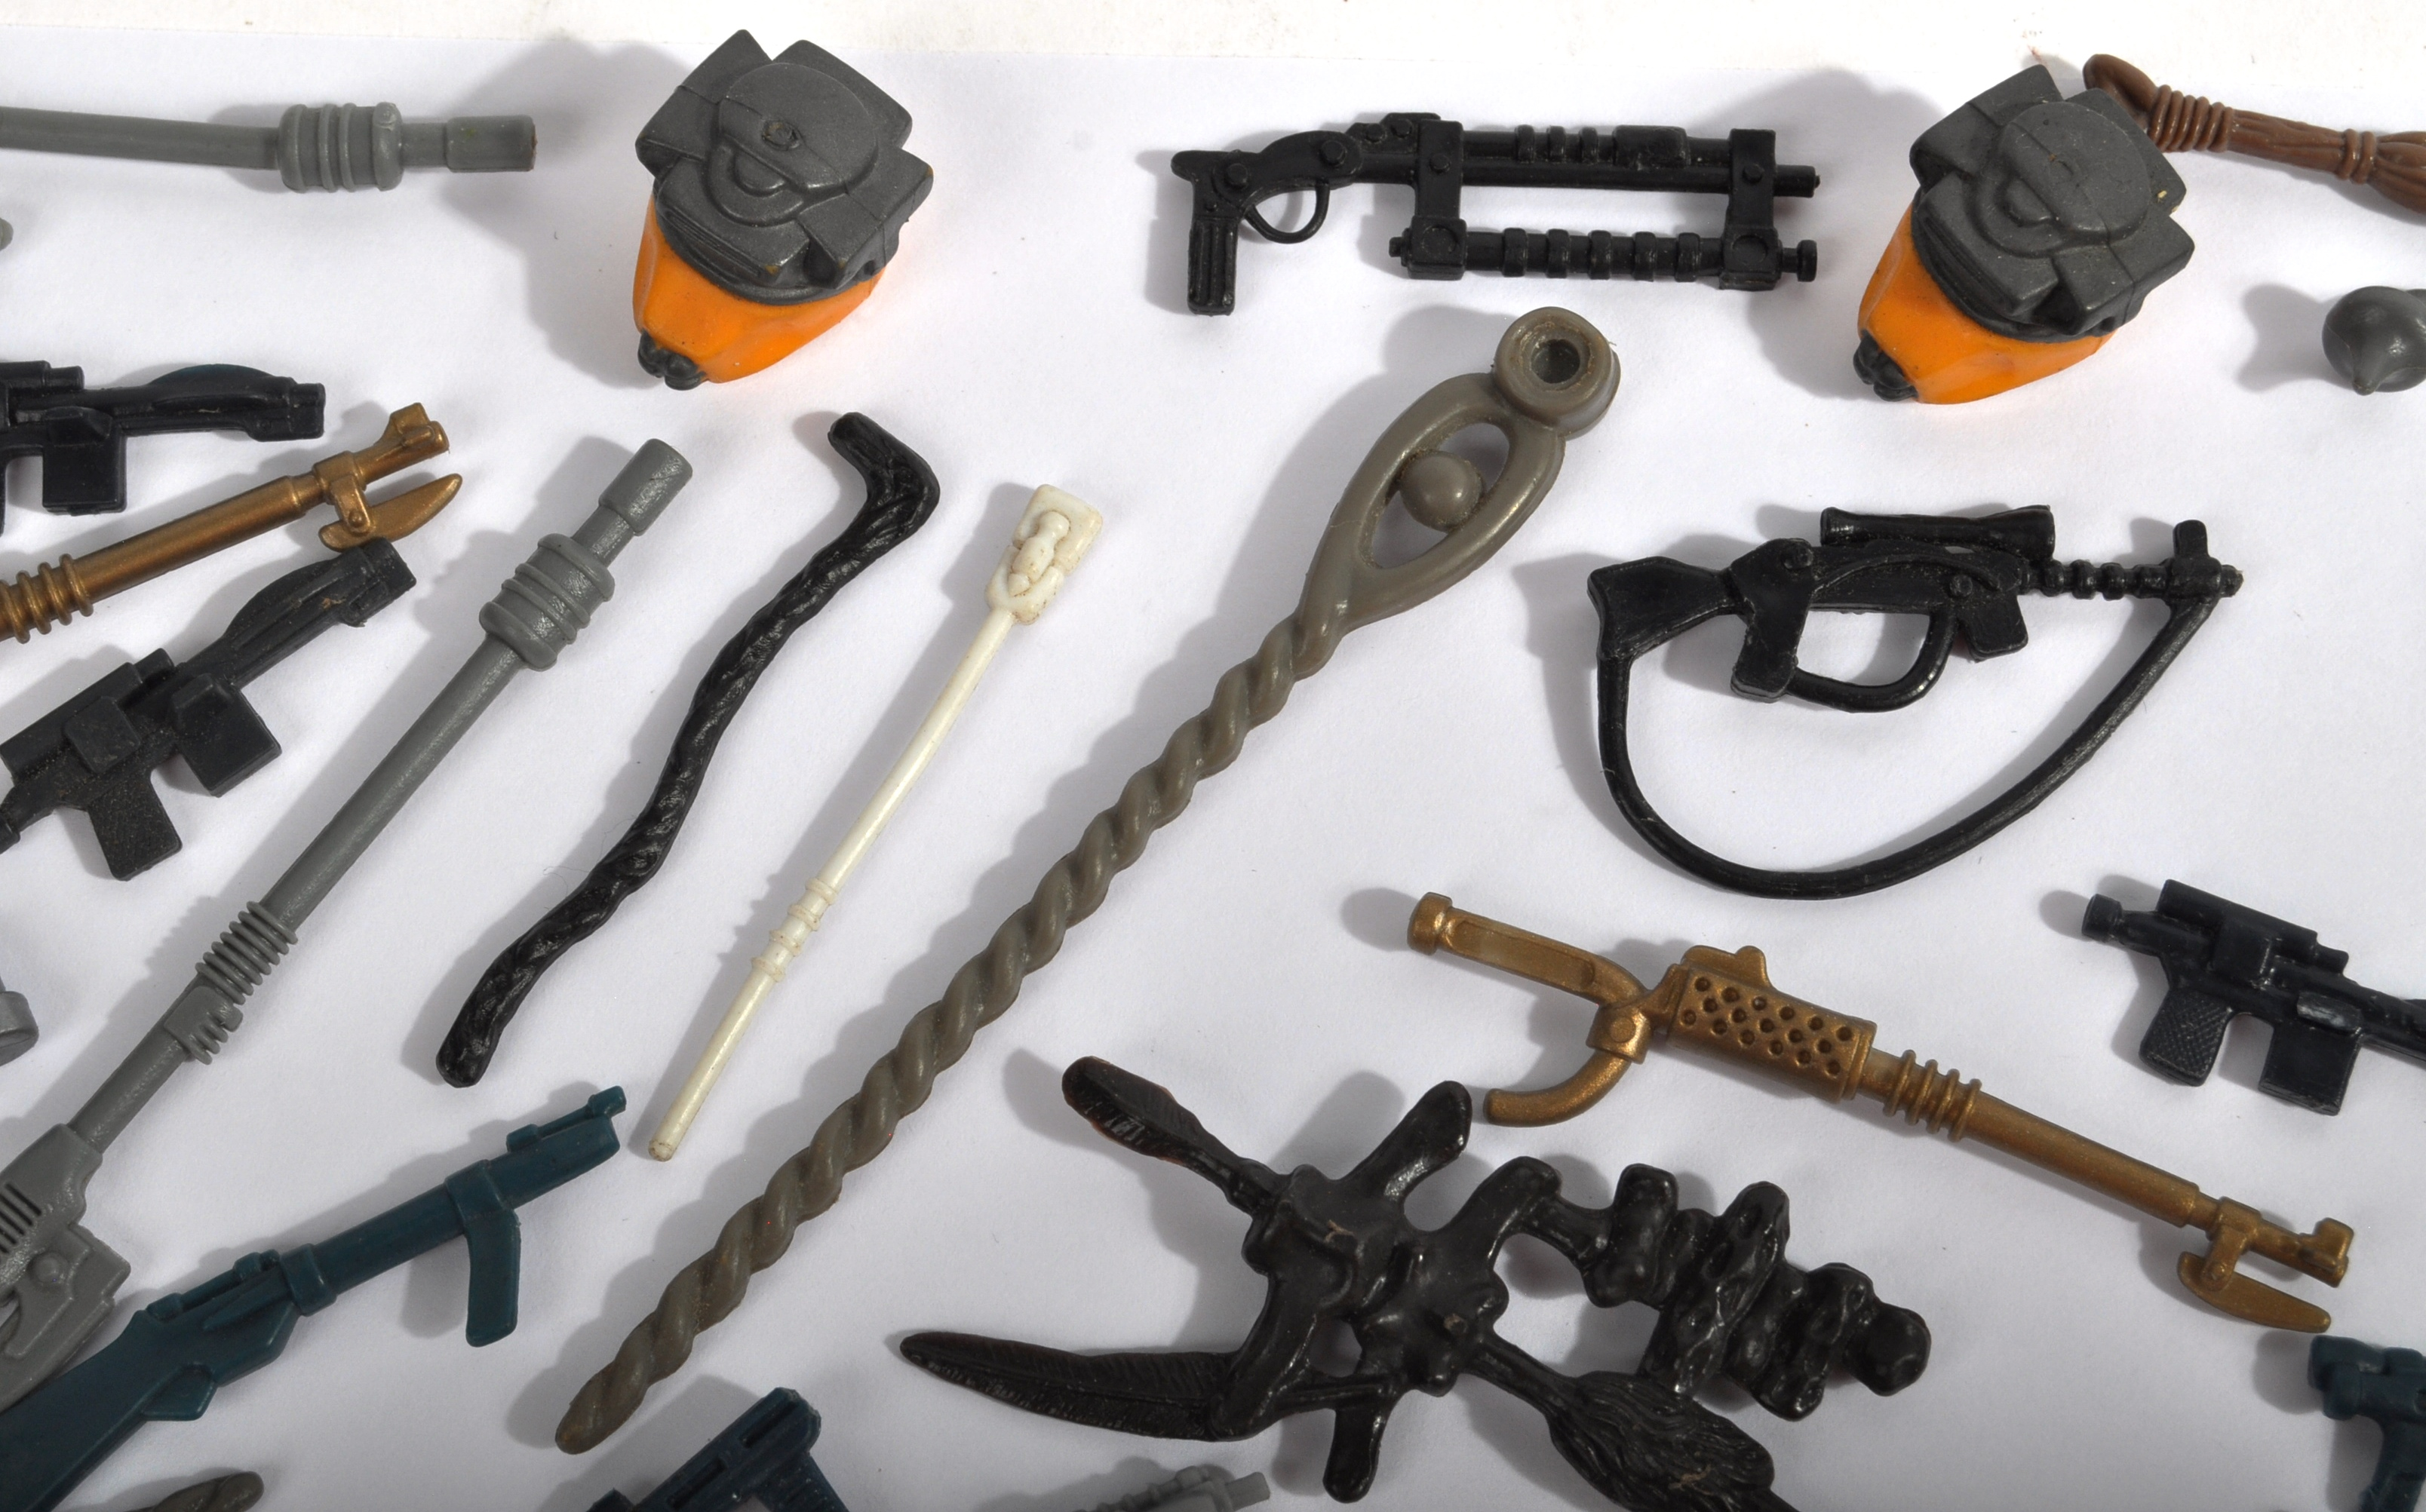 STAR WARS - LARGE COLLECTION OF ORIGINAL VINTAGE WEAPONS & ACCESSORIES. - Image 3 of 11